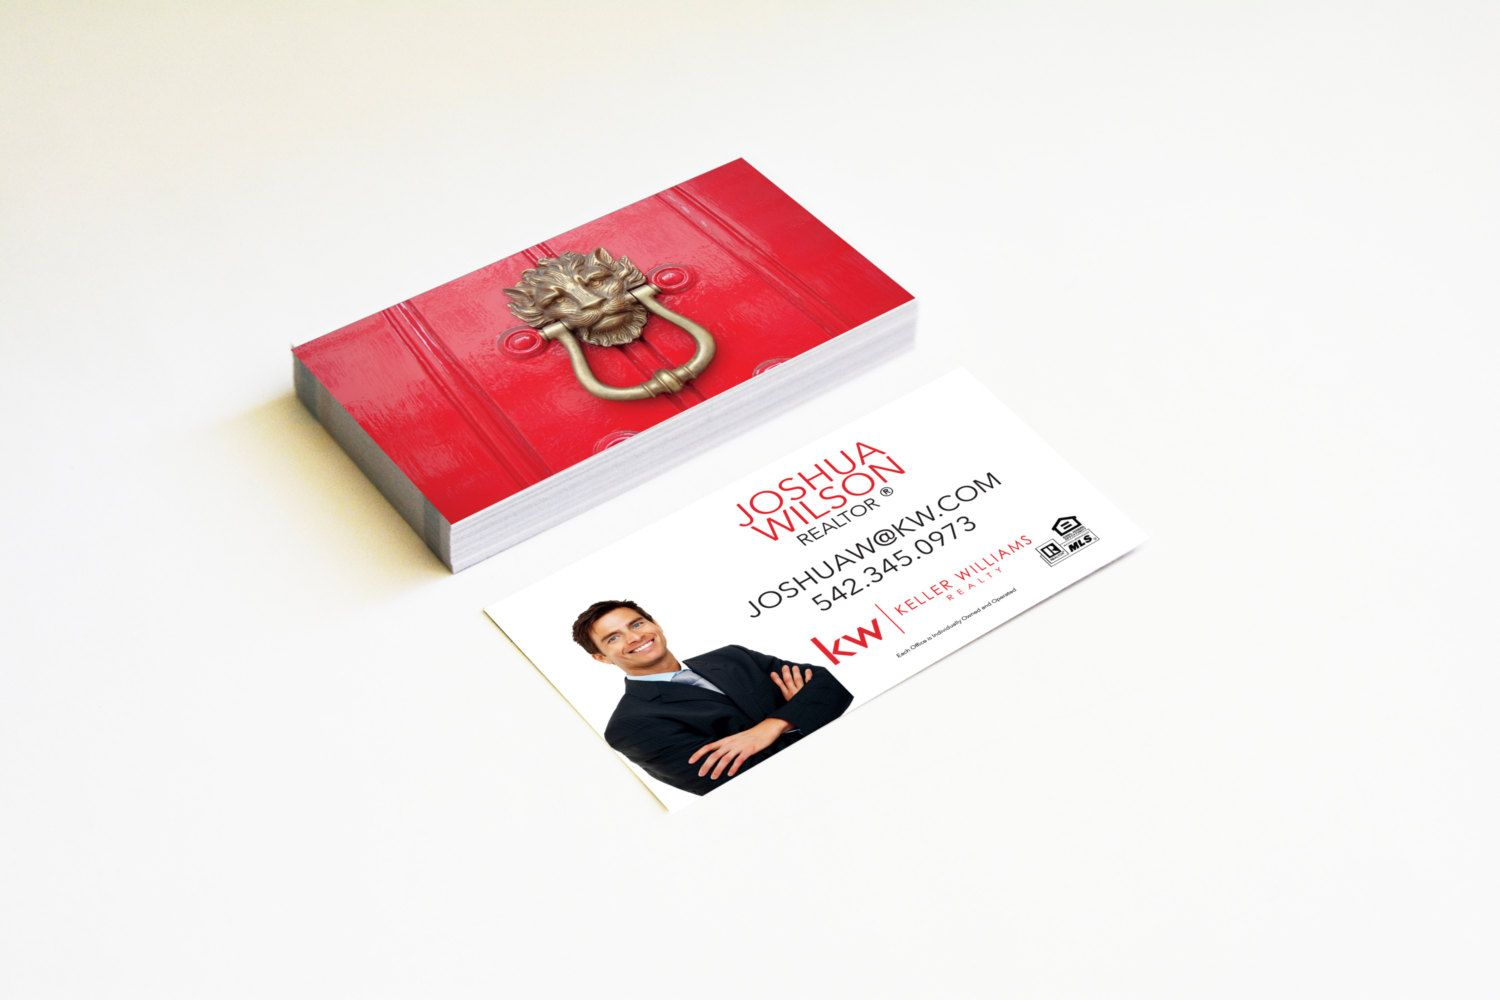 Real estate business cards red door lion modern card realtor keller real estate business cards red door lion modern card realtor keller williams gloss or matte reheart Images